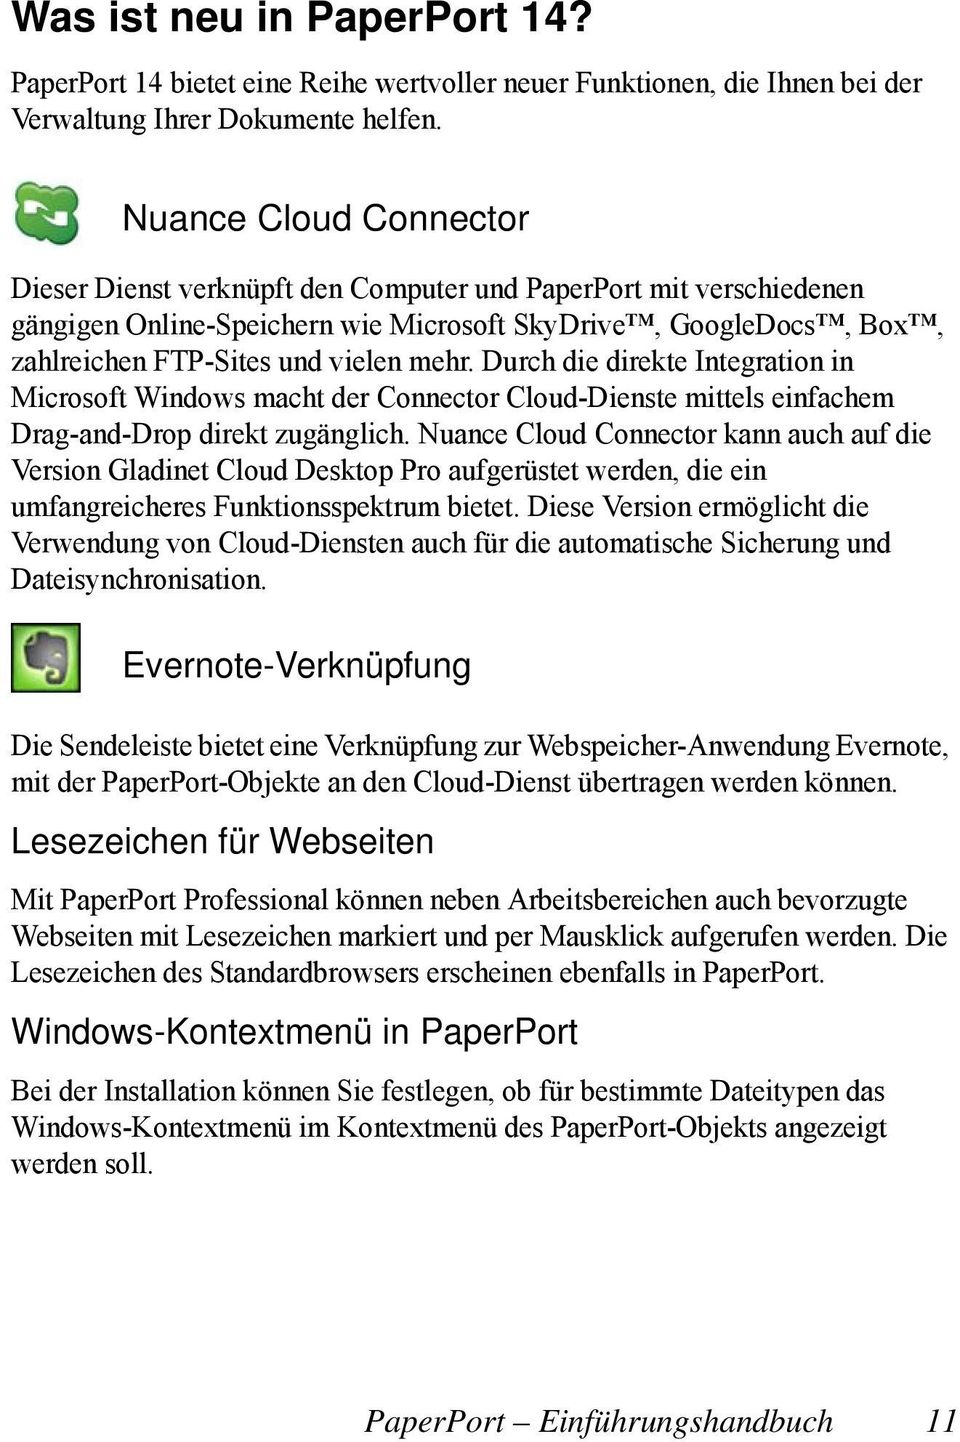 Durch die direkte Integration in Microsoft Windows macht der Connector Cloud-Dienste mittels einfachem Drag-and-Drop direkt zugänglich.